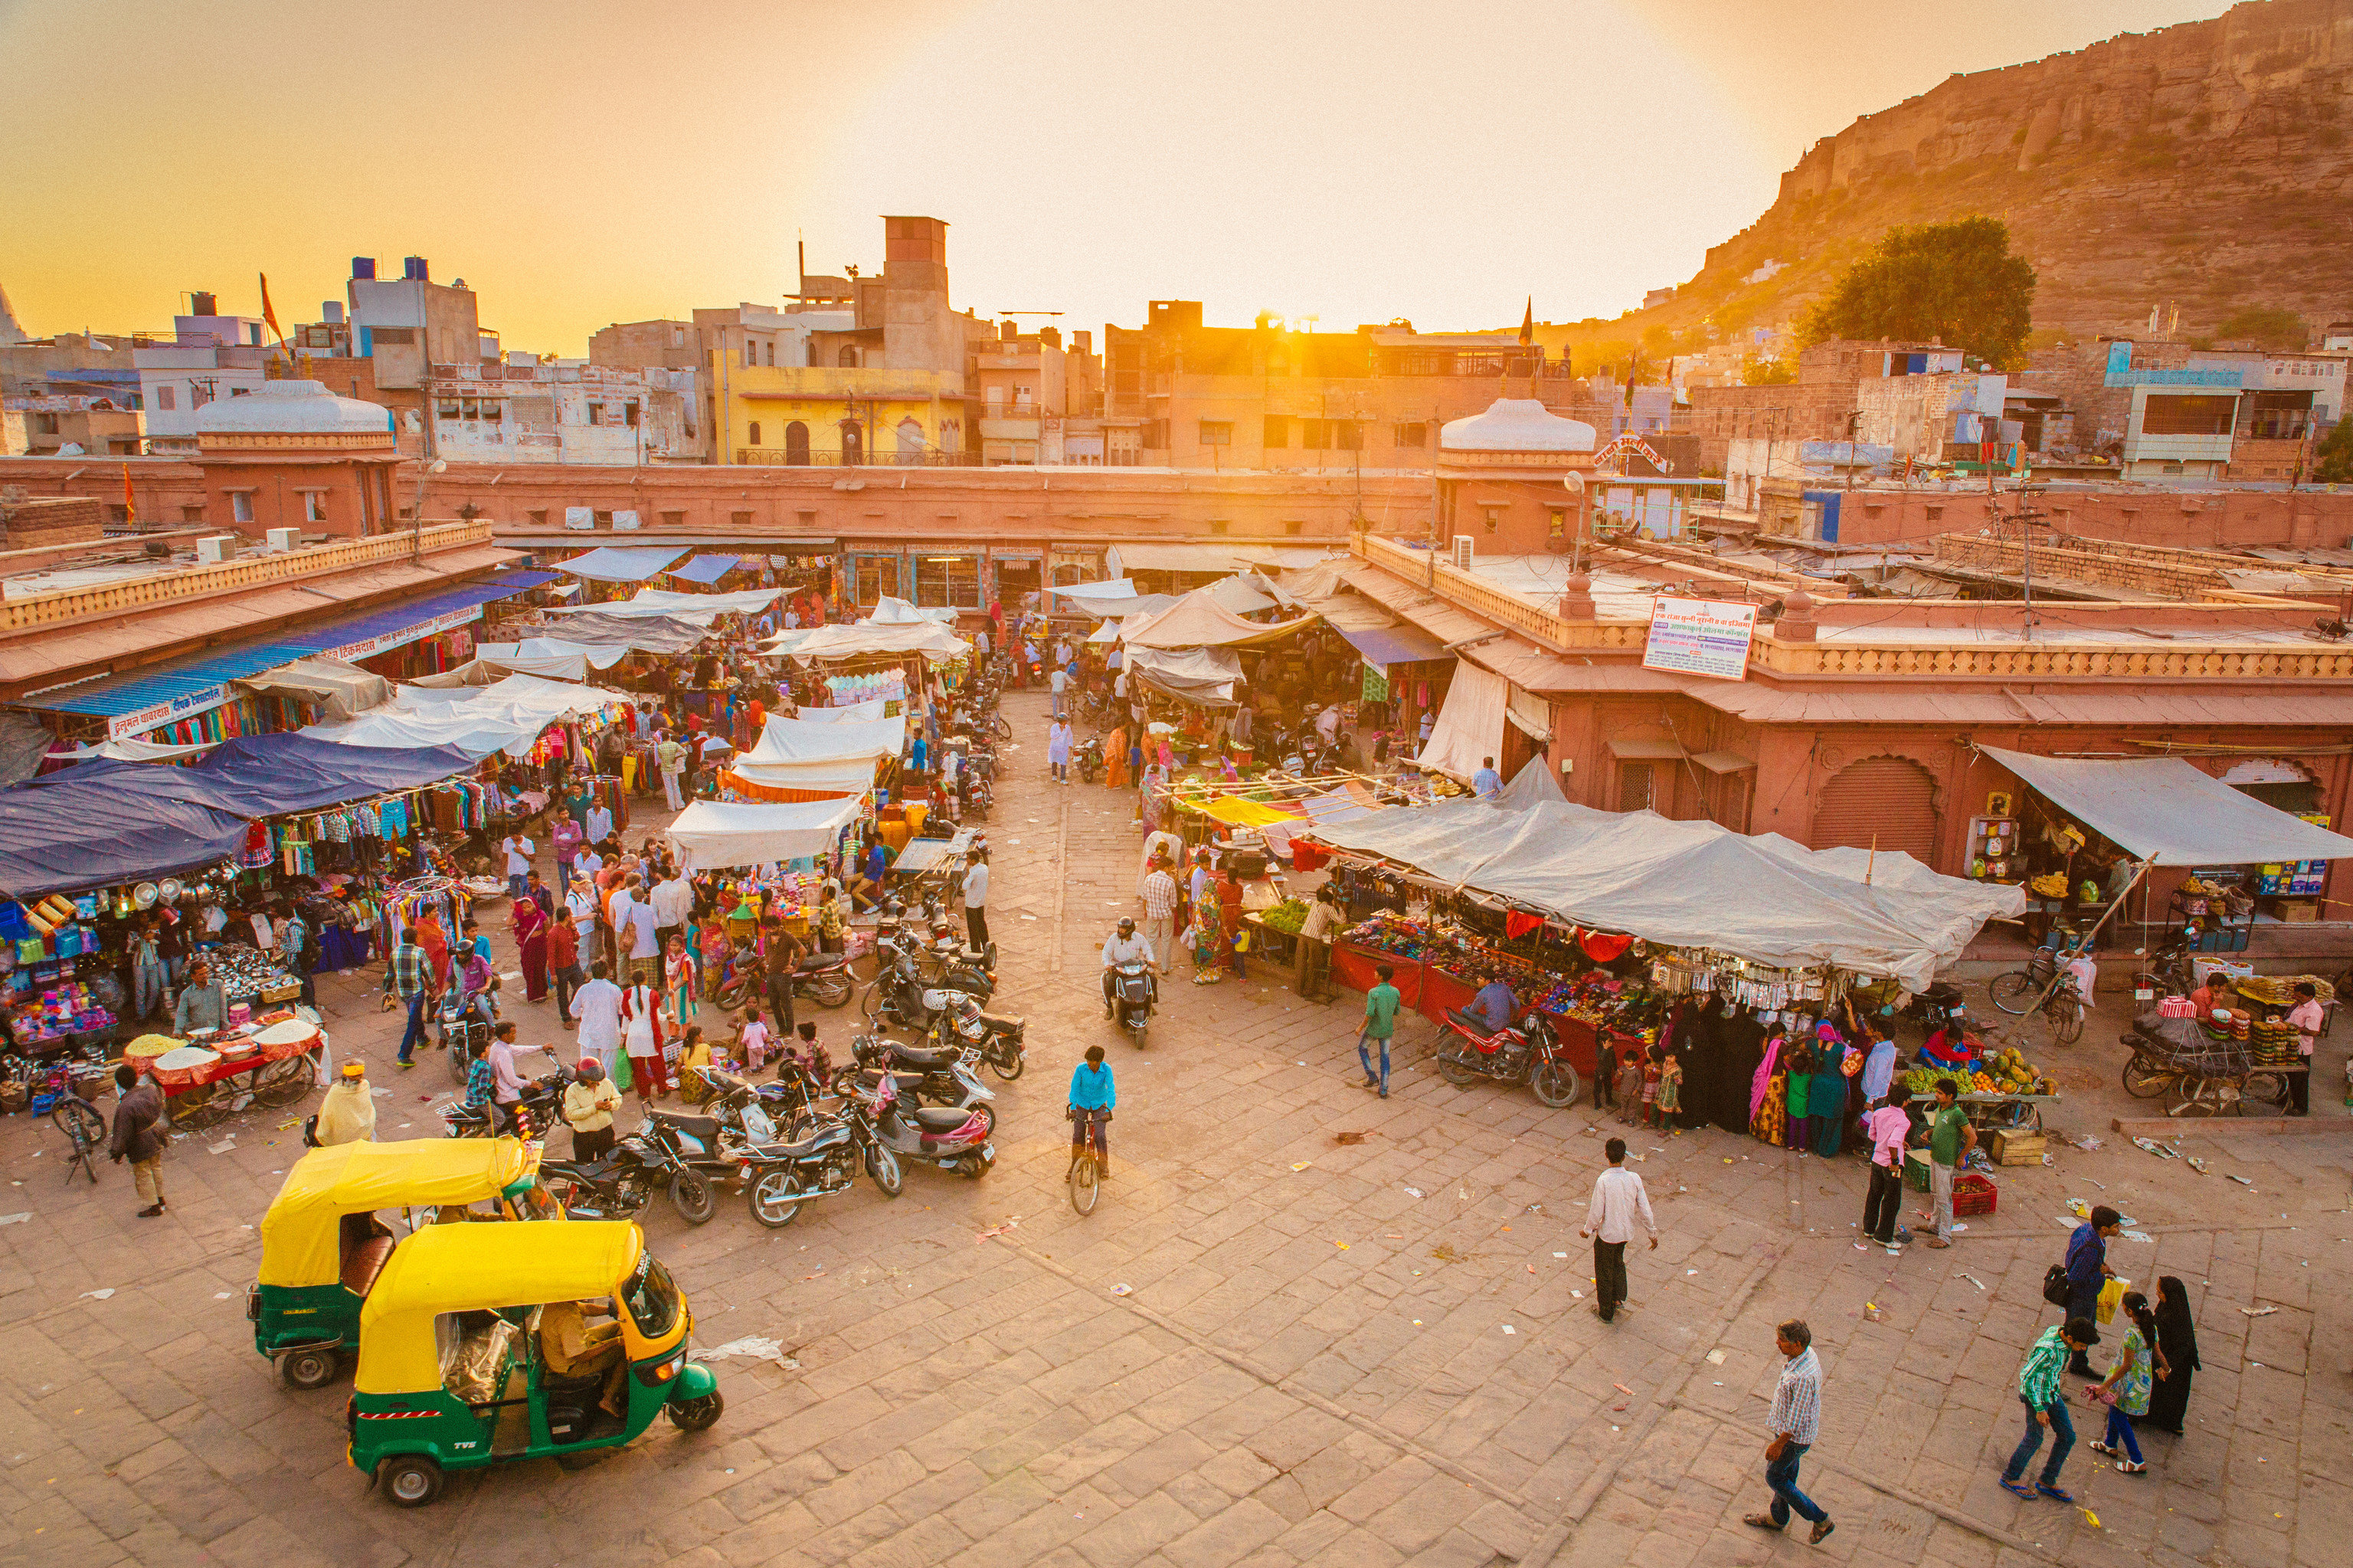 India Jaipur Jodhpur Trip Ideas sky ground toy outdoor City tourism marketplace people group recreation fair leisure sand market several